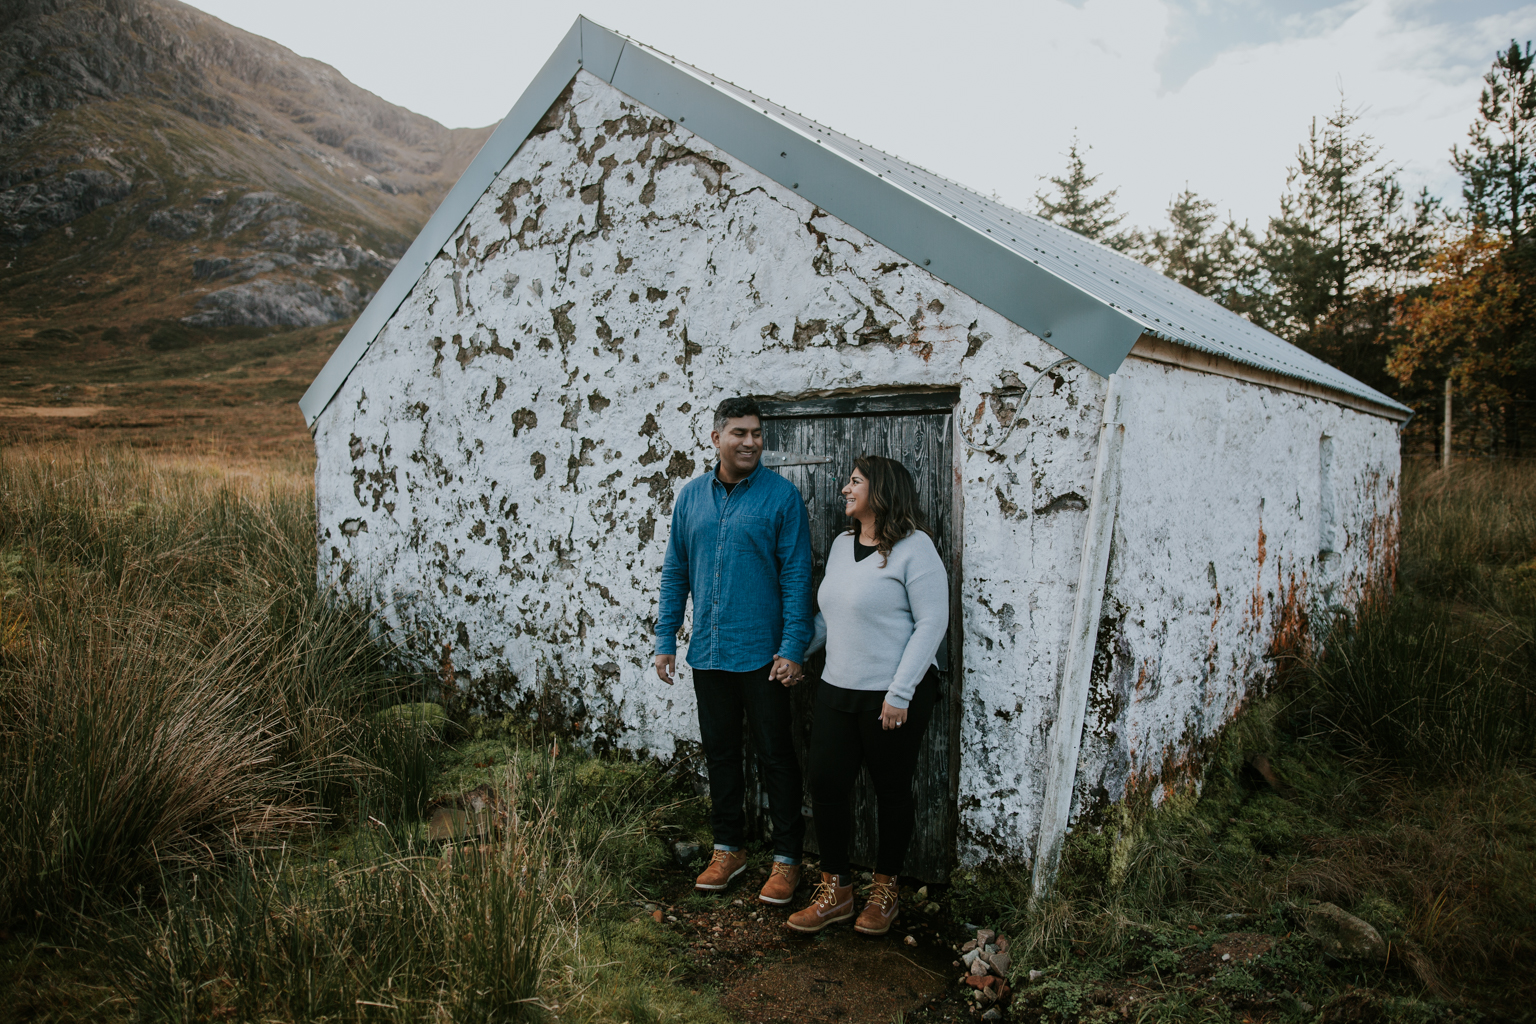 Couple is laughing next to the white house in Glencoe, Scotland.